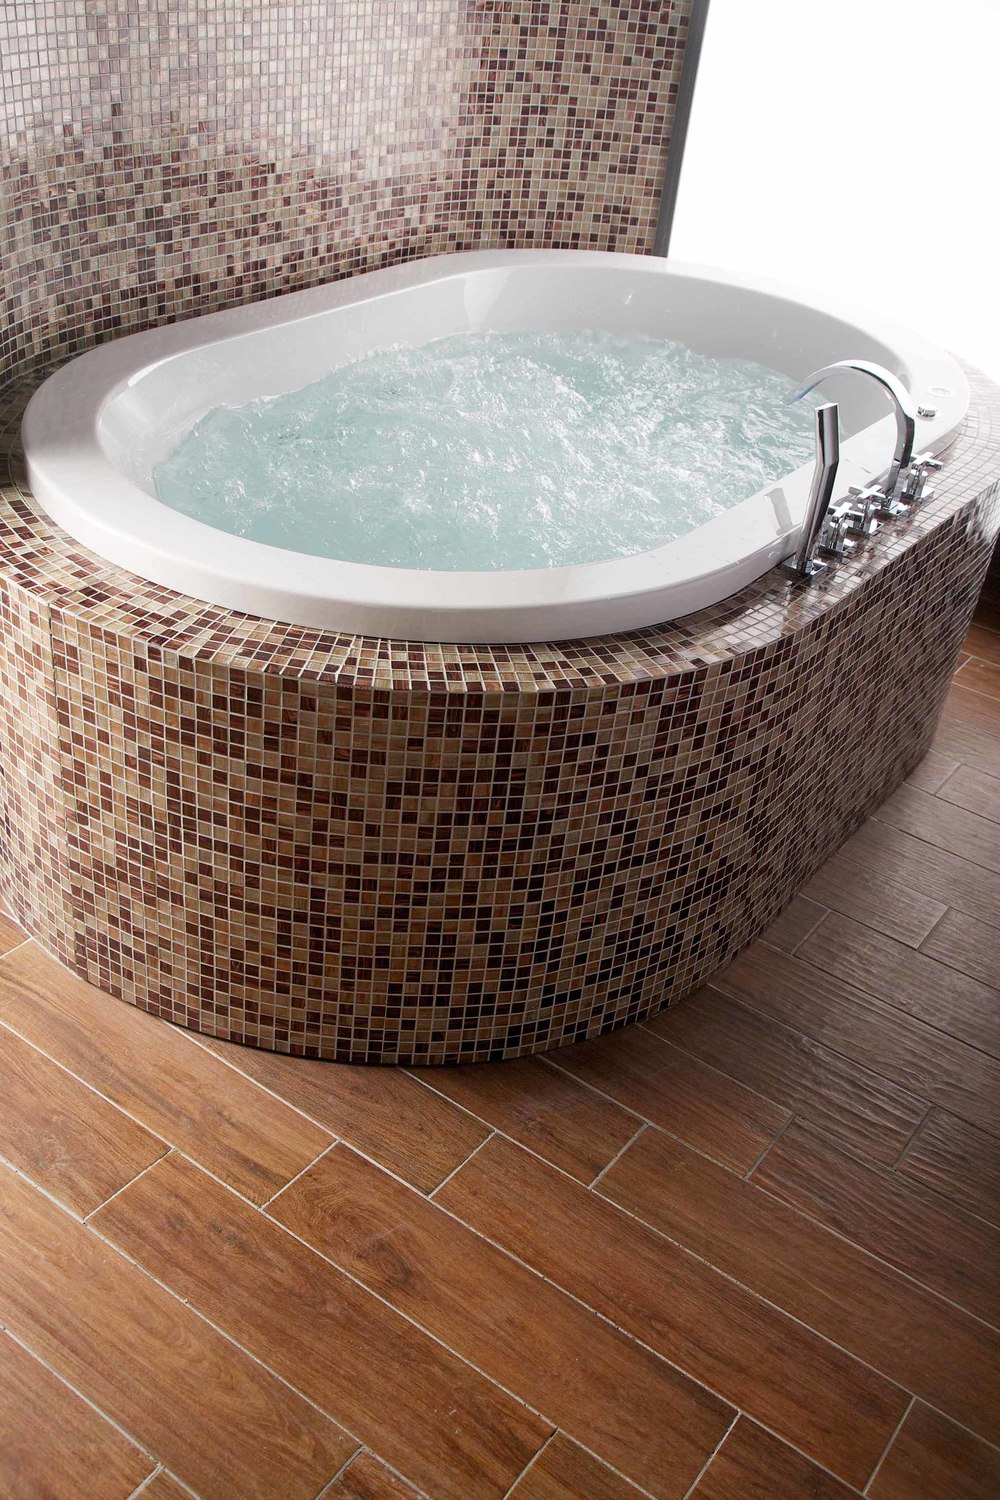 Corsair Bath Tub (1).jpg